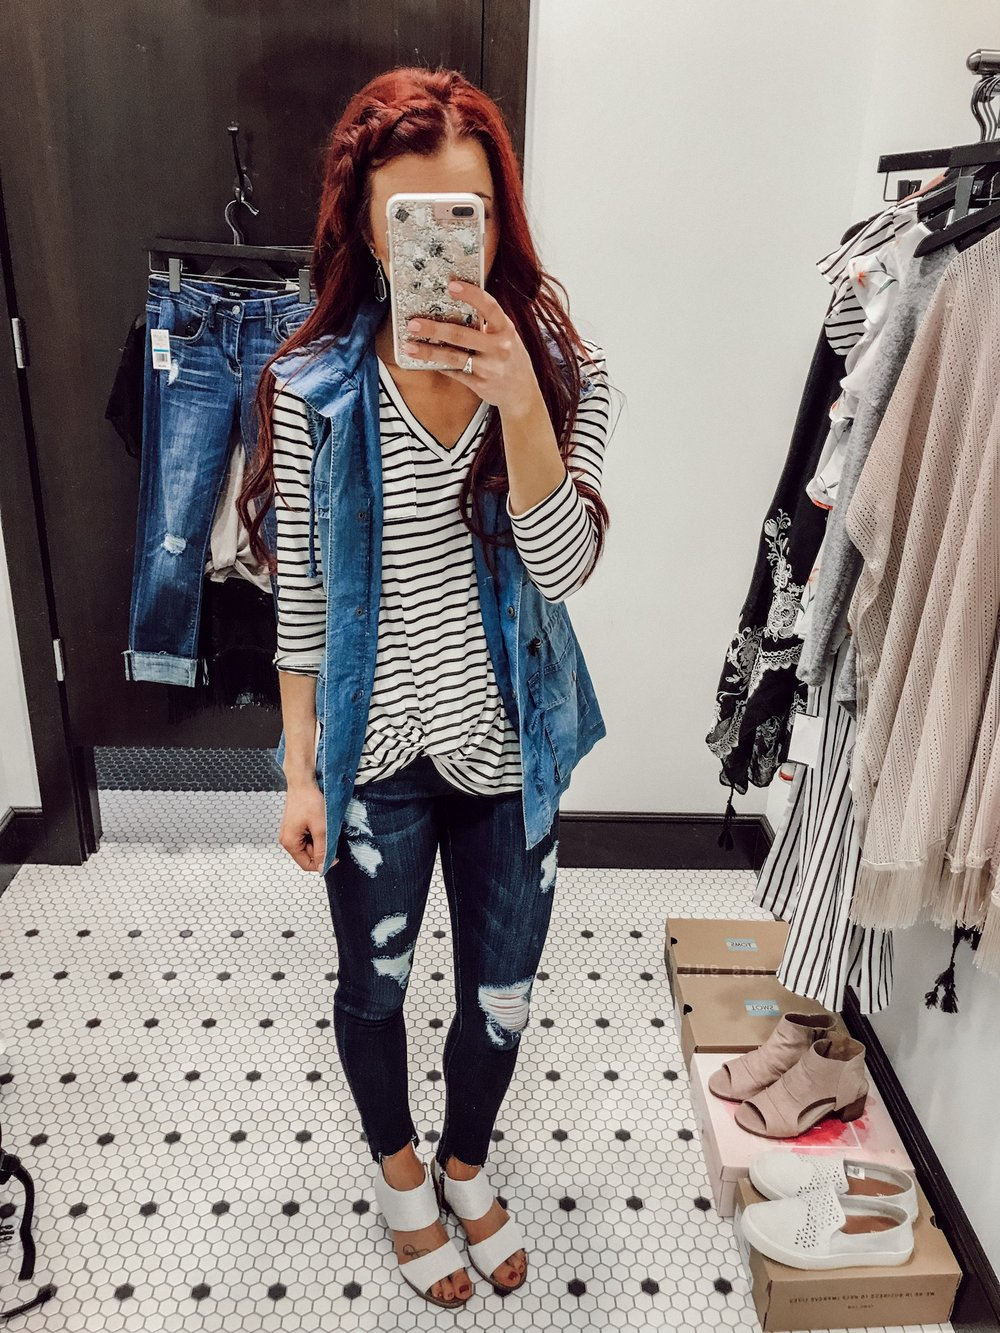 Spring Break Style Inspiration with Dry Goods by popular Indianapolis fashion blogger Trendy in Indy